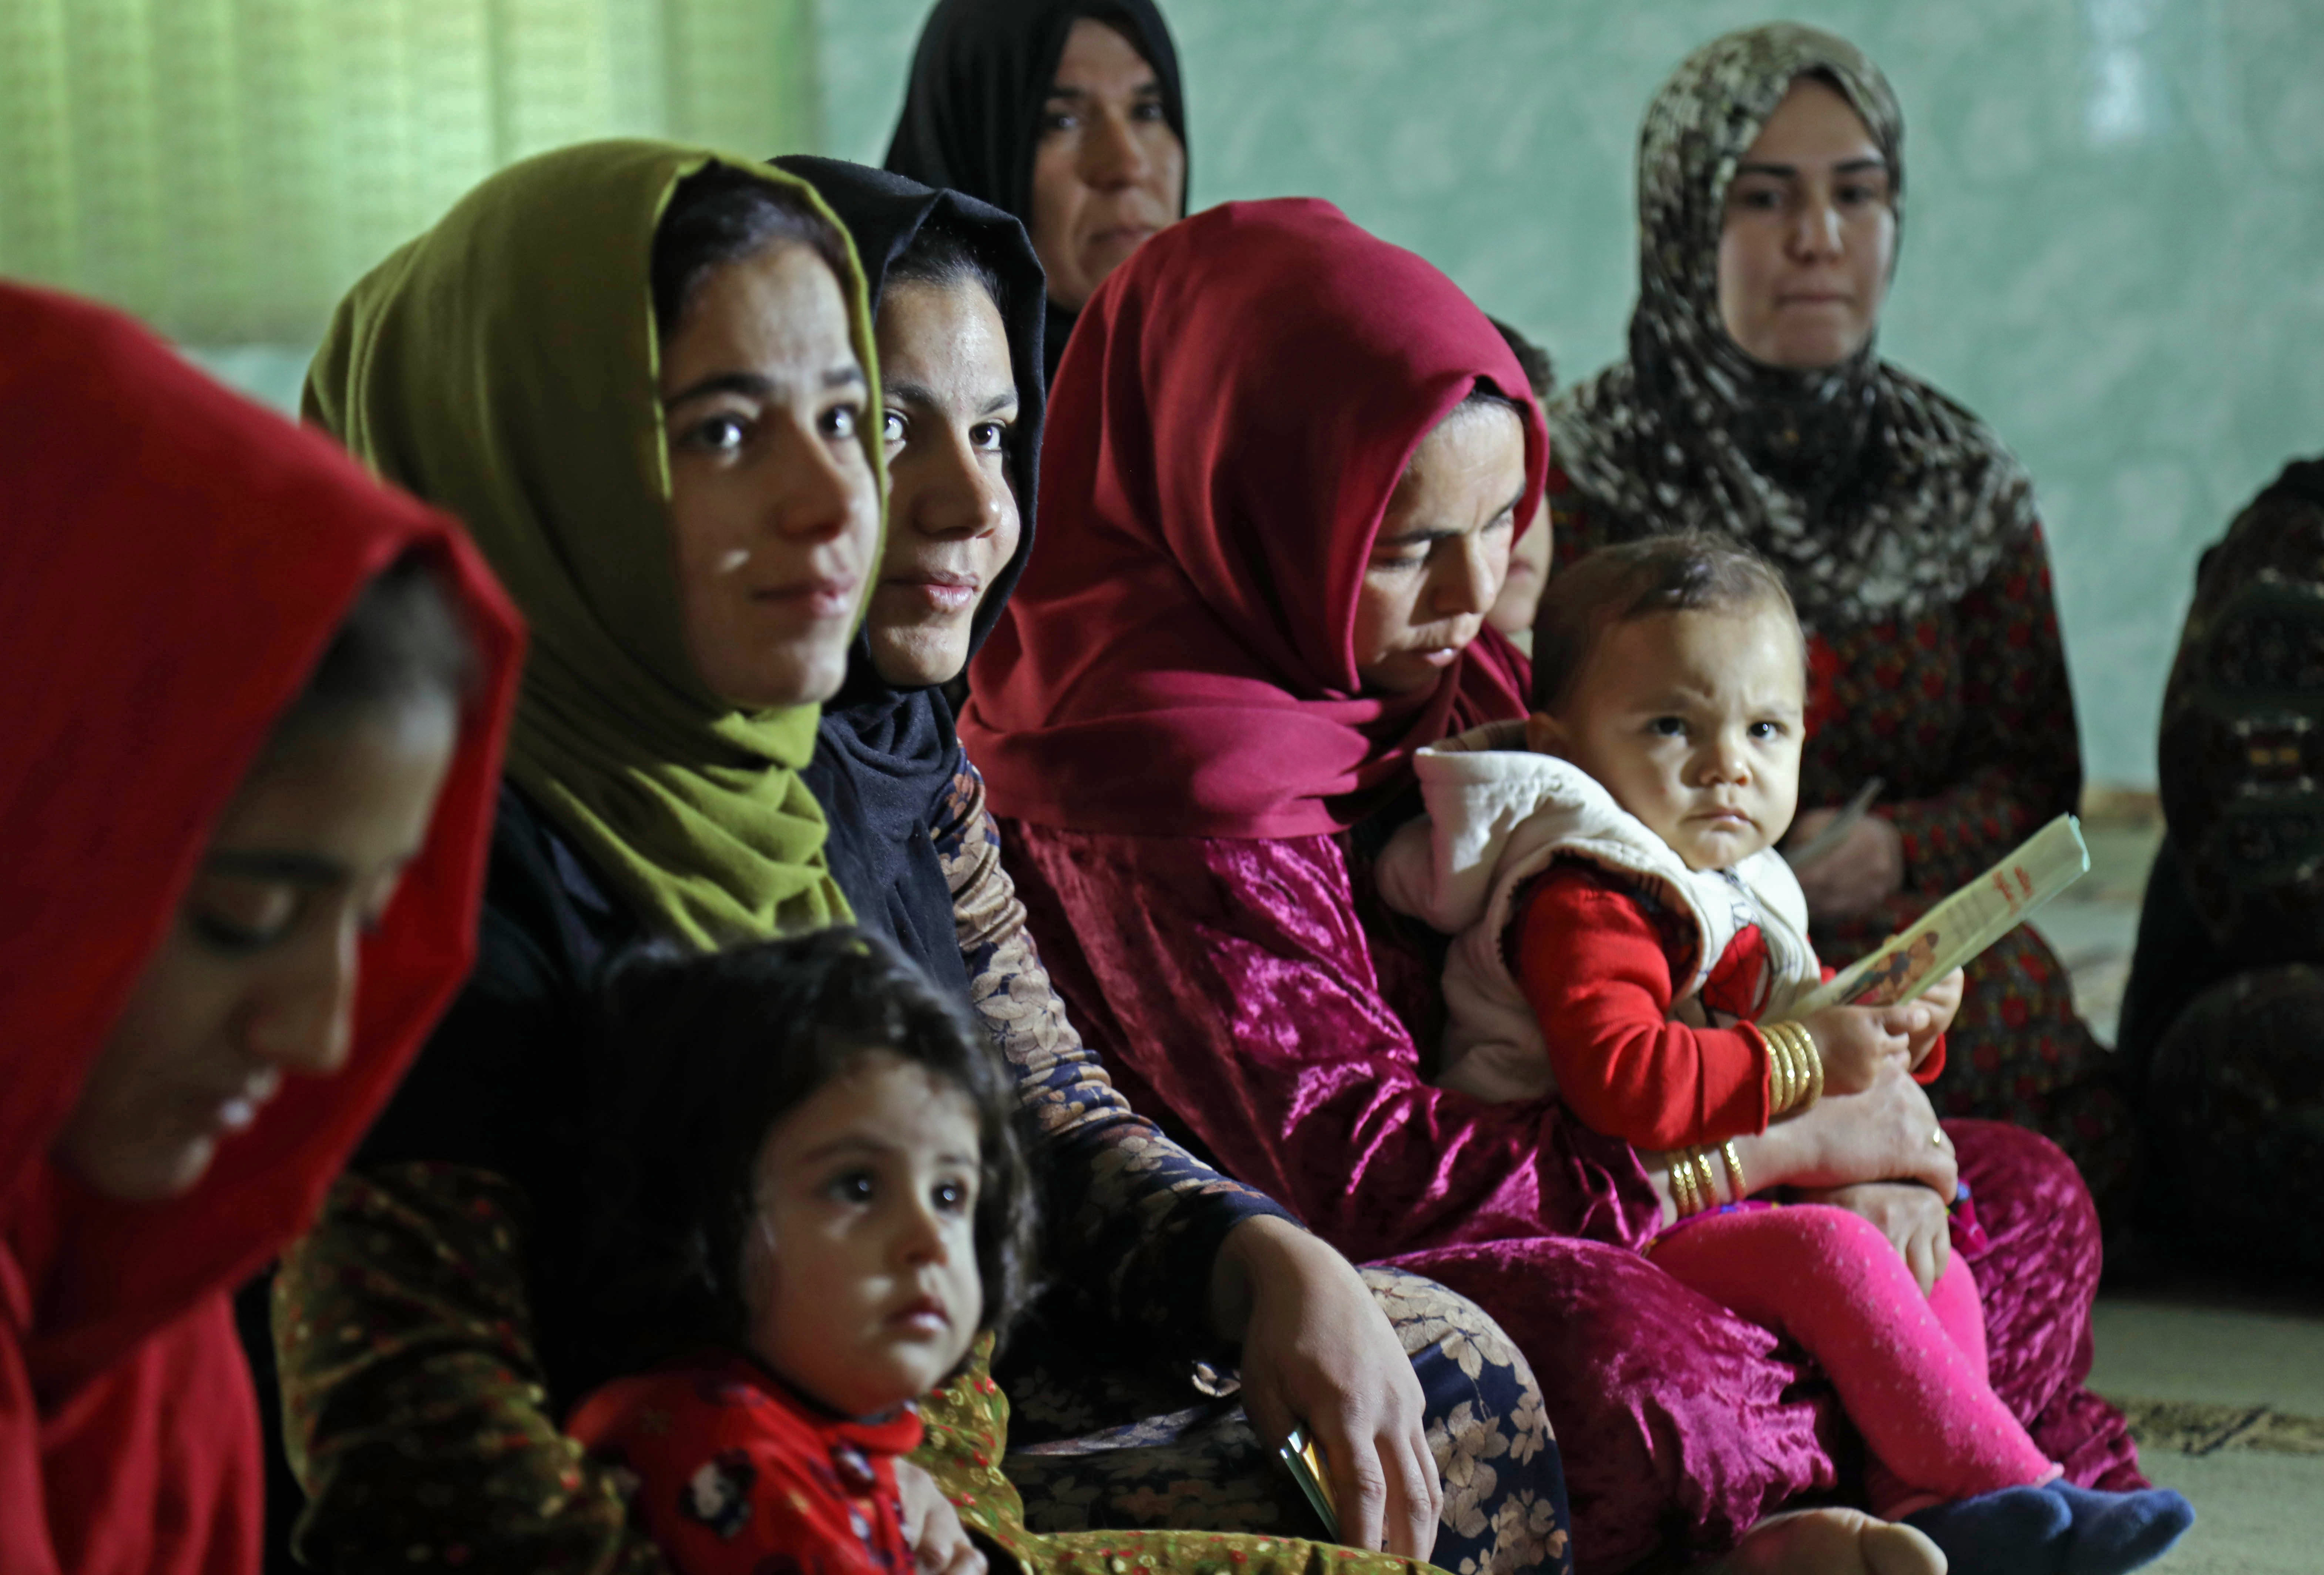 Women and young girls listen to Rasul (not pictured), an Iraqi Kurdish activist with the nonprofit organization WADI, as she speaks about the harms of genital mutilation in Sharboty Saghira, Iraq, Dec. 3, 2018.